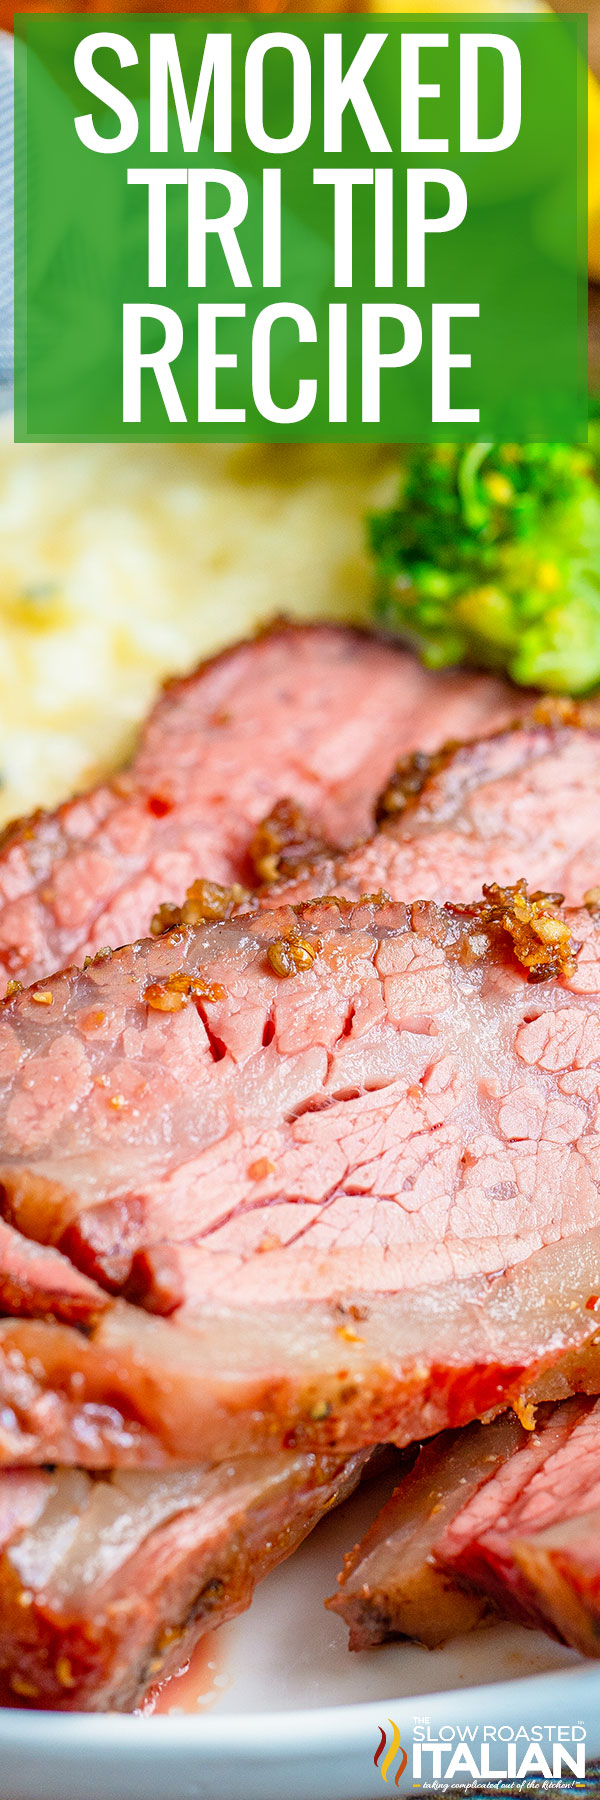 titled photo collage shows a close up of sliced Smoked Tri Tip